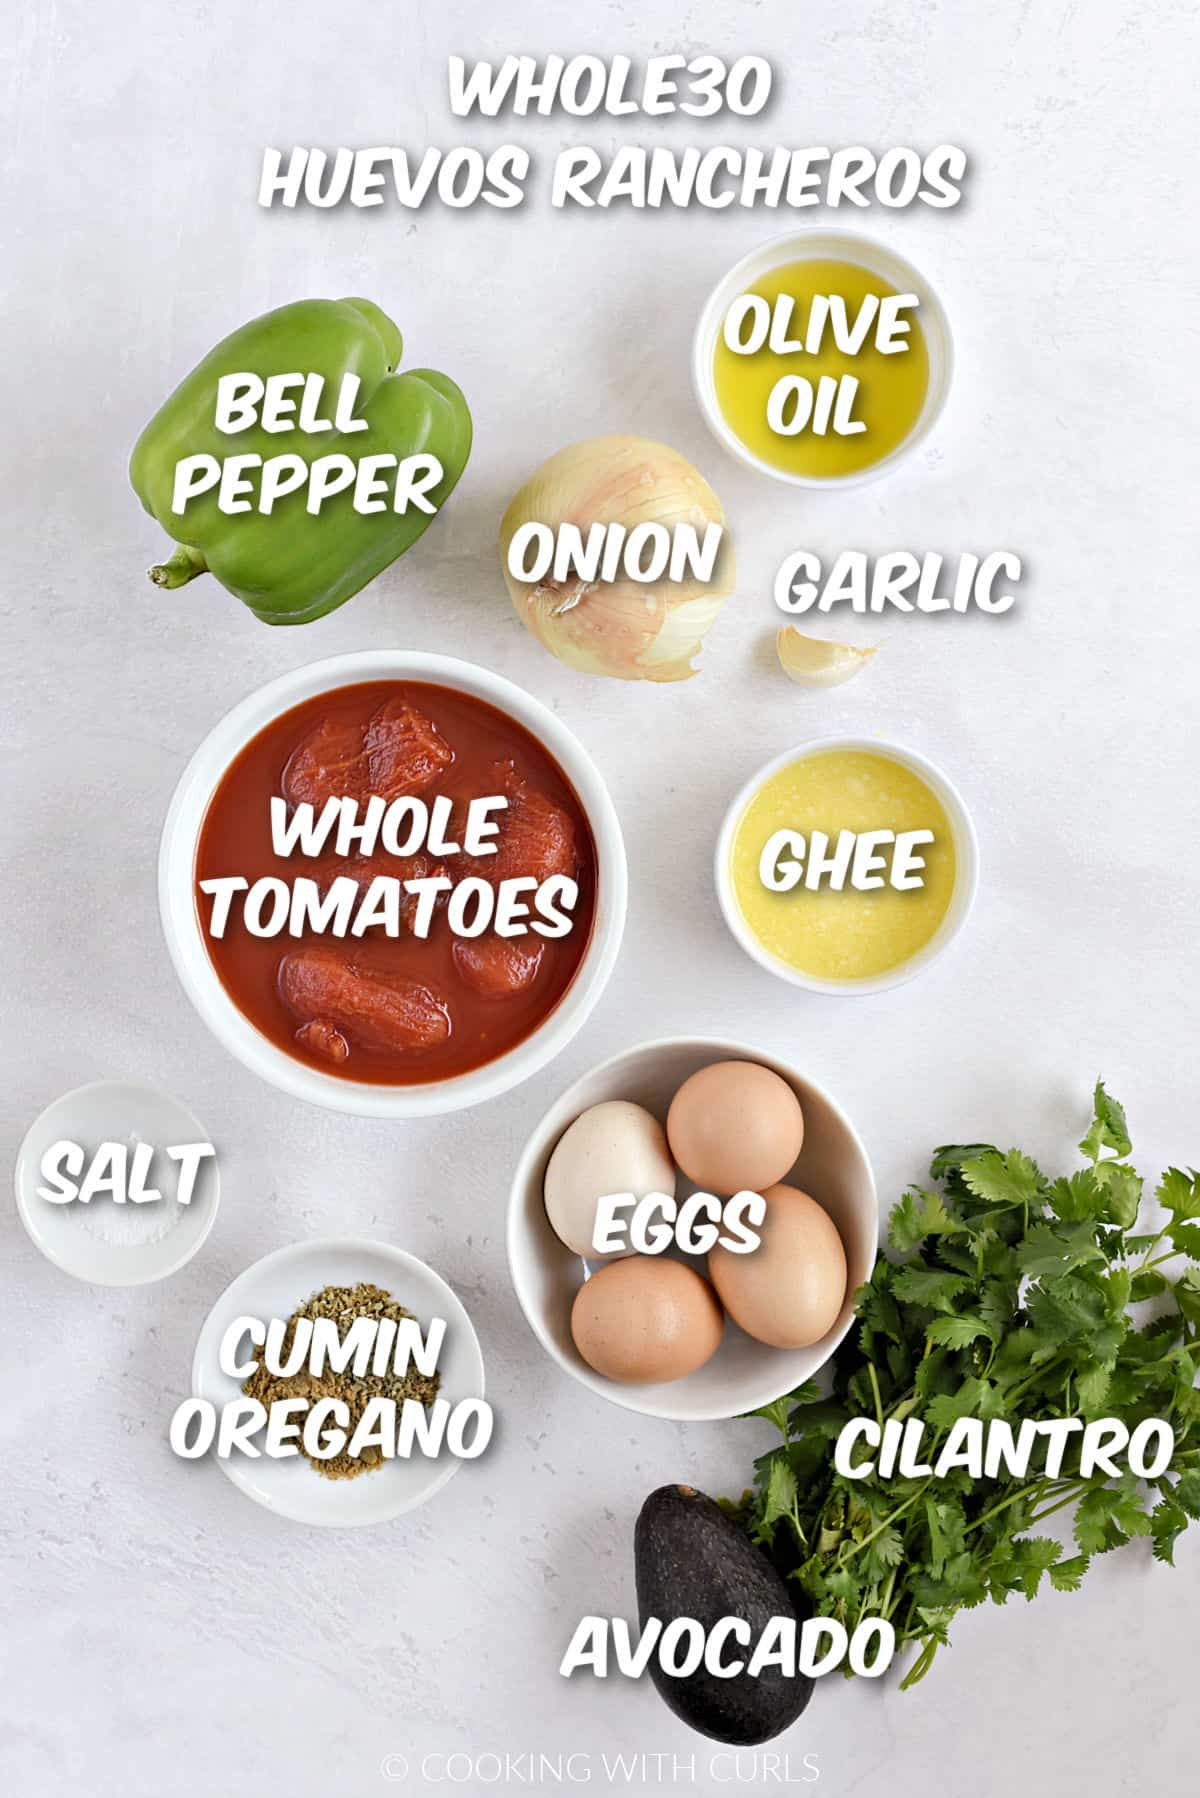 All of the ingredients to make whole30 huevos rancheros.